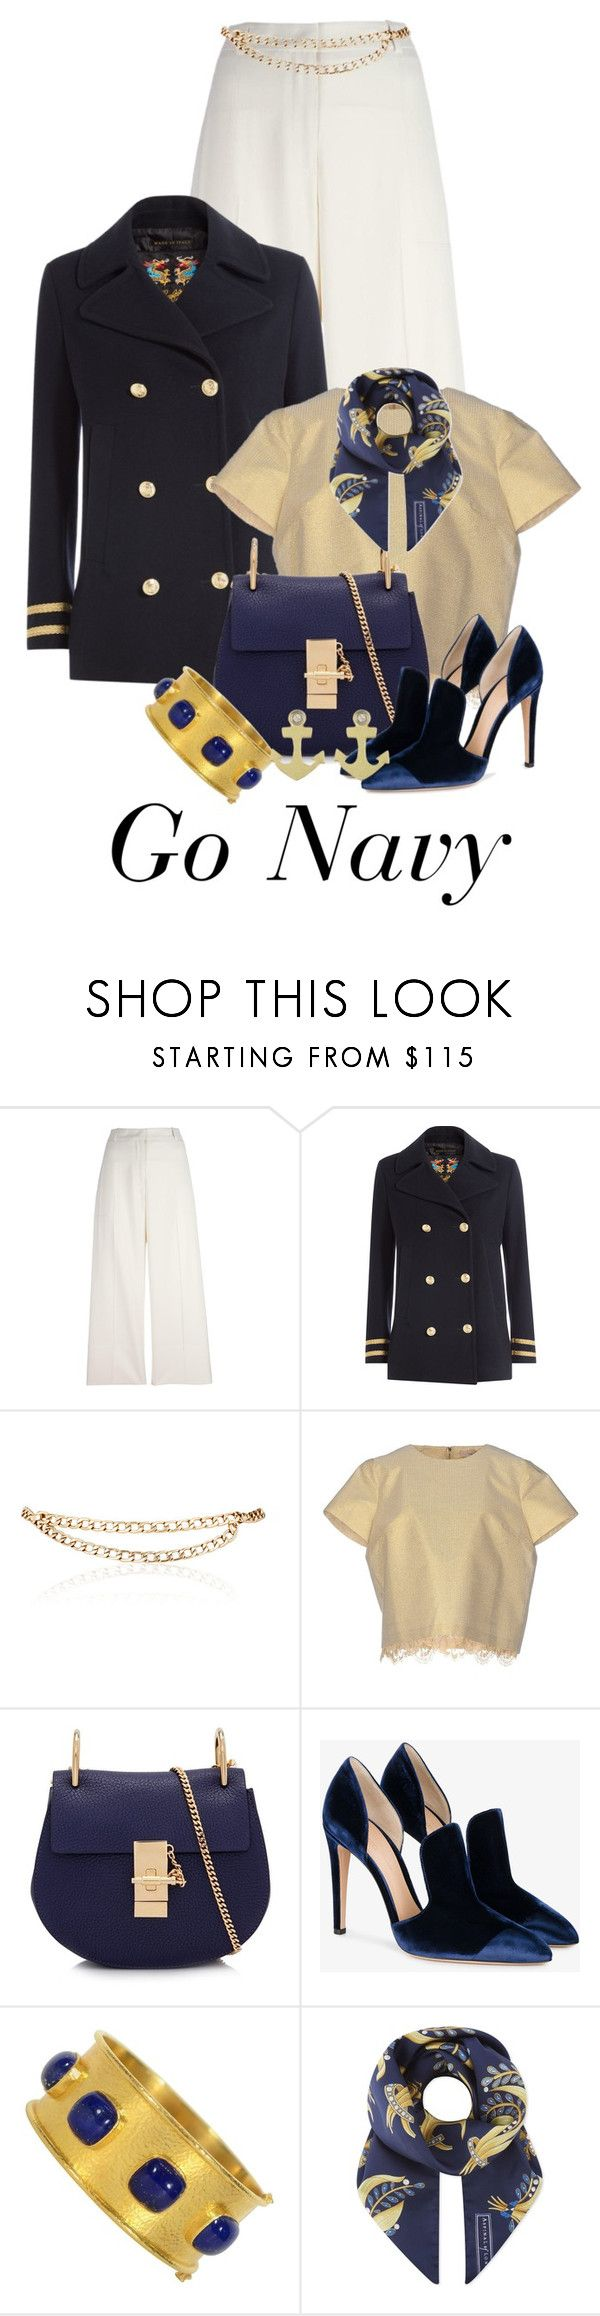 """""""Go NAVY Military Look!"""" by shamrockclover ❤ liked on Polyvore featuring Ermanno Scervino, The Seafarer, Maison Mayle, SCEE, Chloé, Gianvito Rossi, Elizabeth Locke, Aspinal of London and Meira T"""